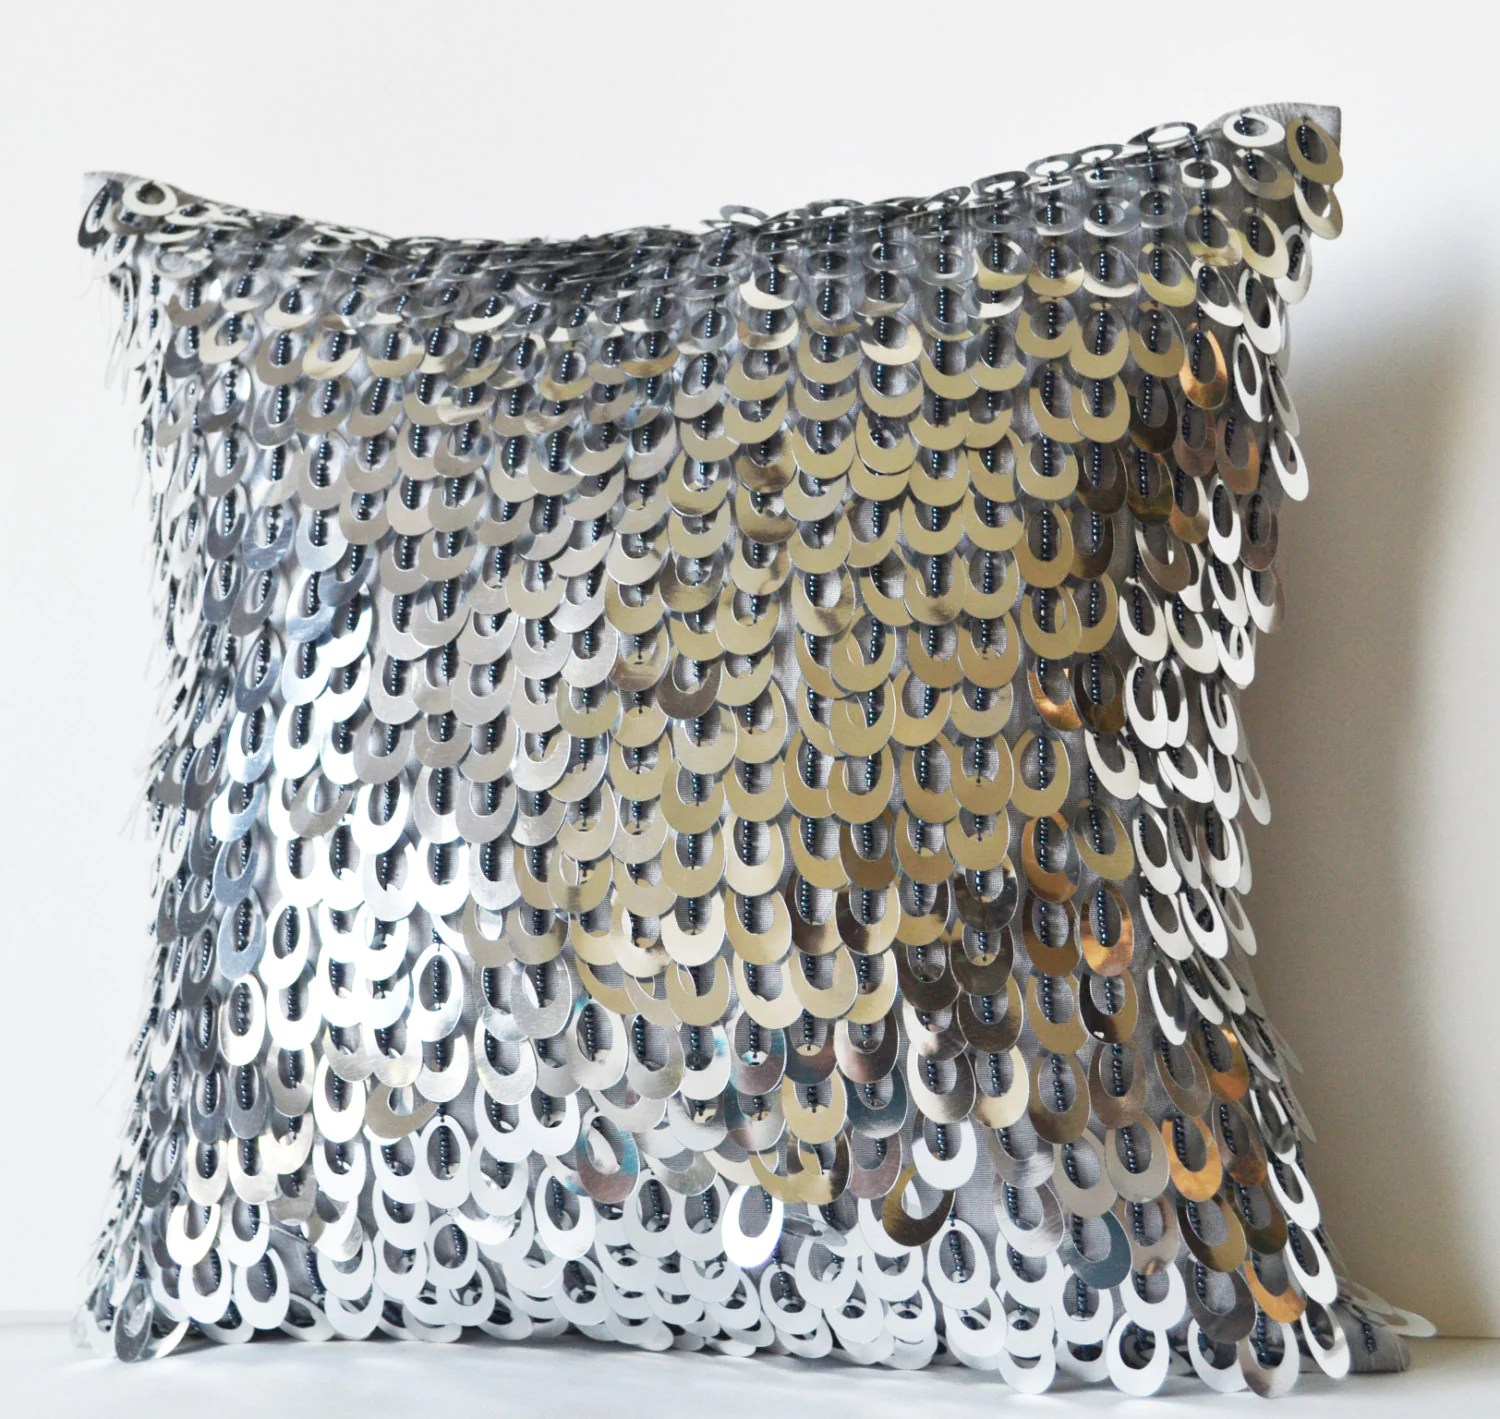 Decorative Throw Pillow Cover with Metallic Sequins Beads